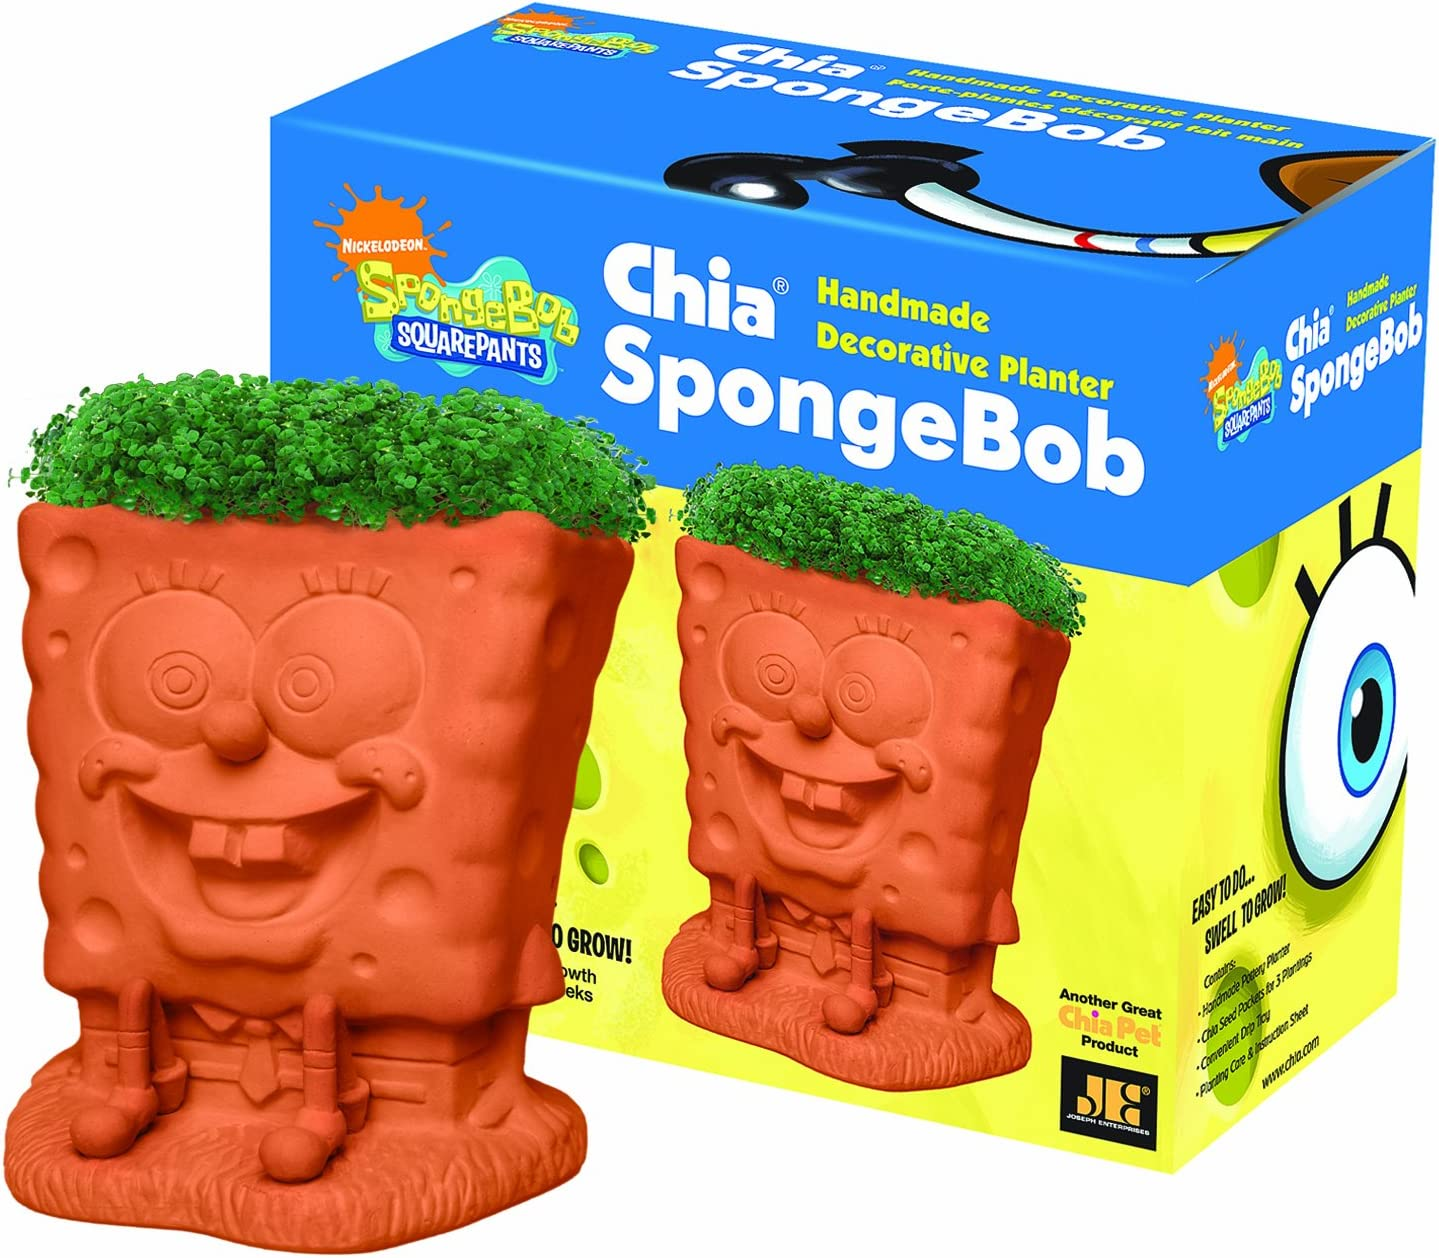 Chia Pet SpongeBob with Seed E Pack Planter 70% OFF Outlet Manufacturer regenerated product Decorative Pottery